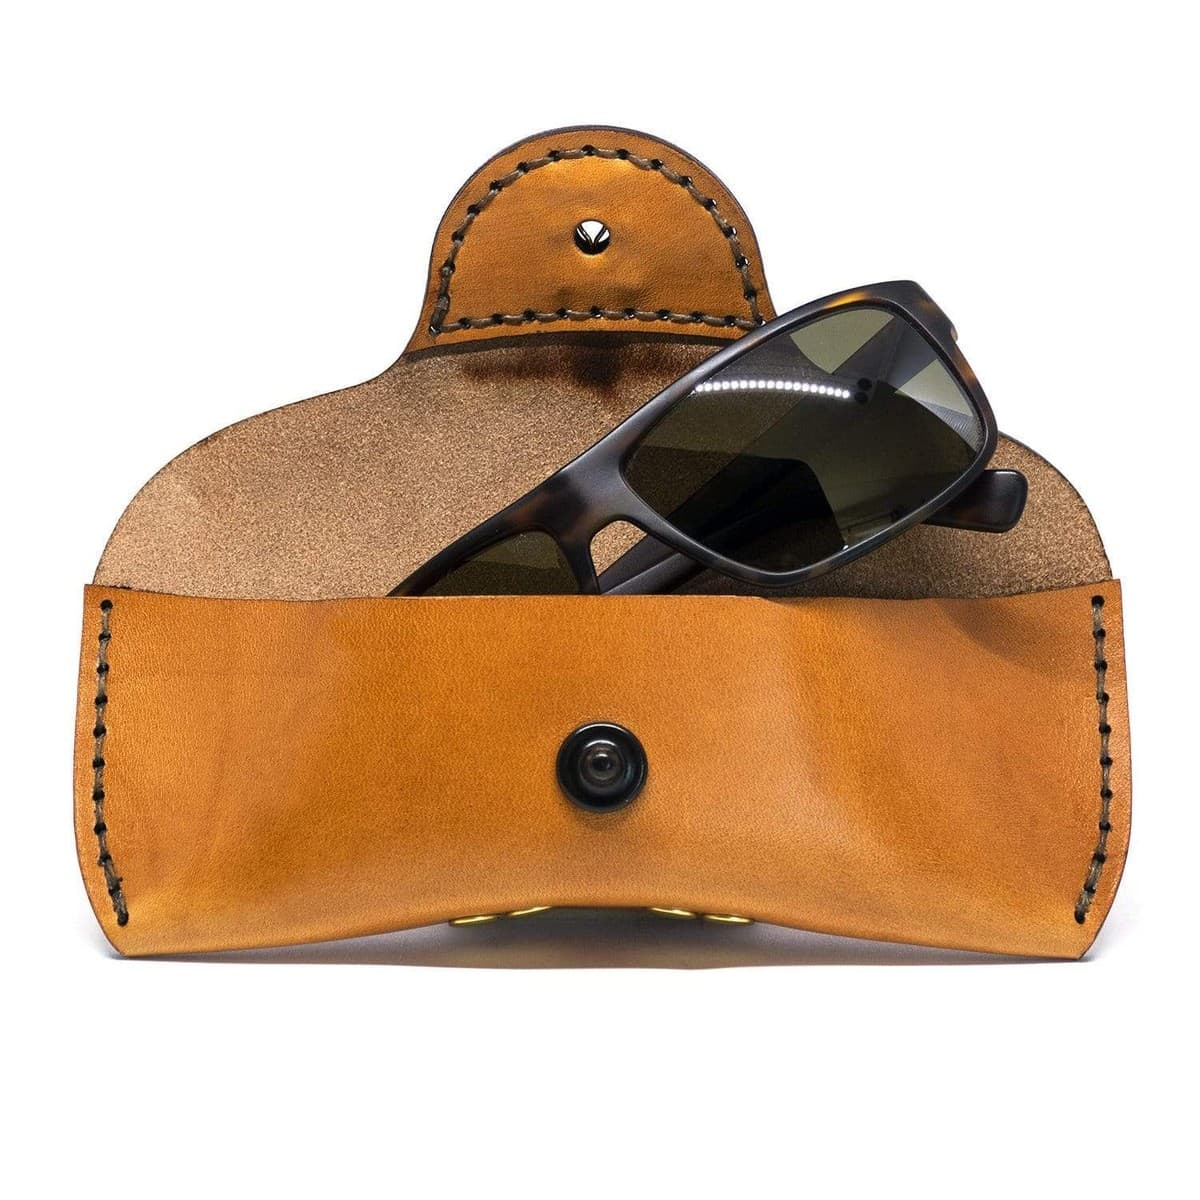 Buy The Atlantic Rancher Leather Eyeglass Case - Crush-proof!